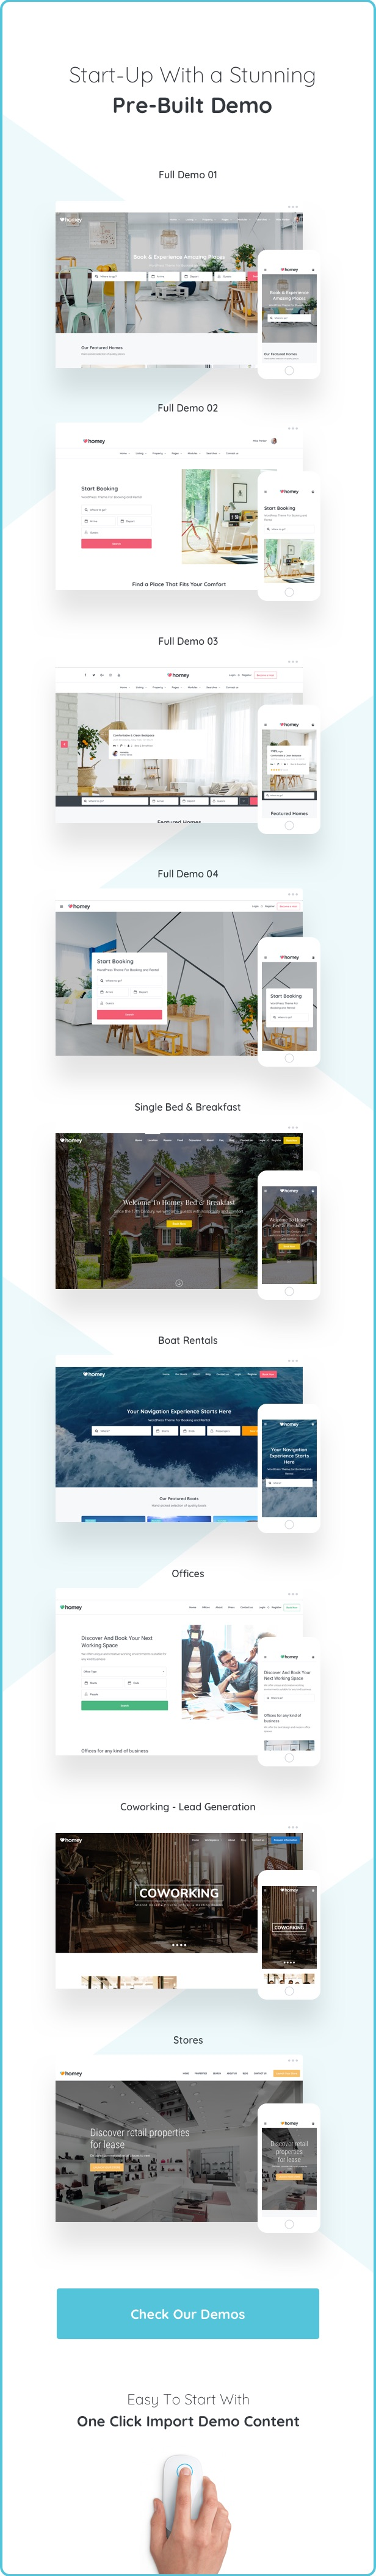 Homey - Booking and Rentals WordPress Theme - 6  Download Homey – Booking and Rentals WordPress Theme nulled demos